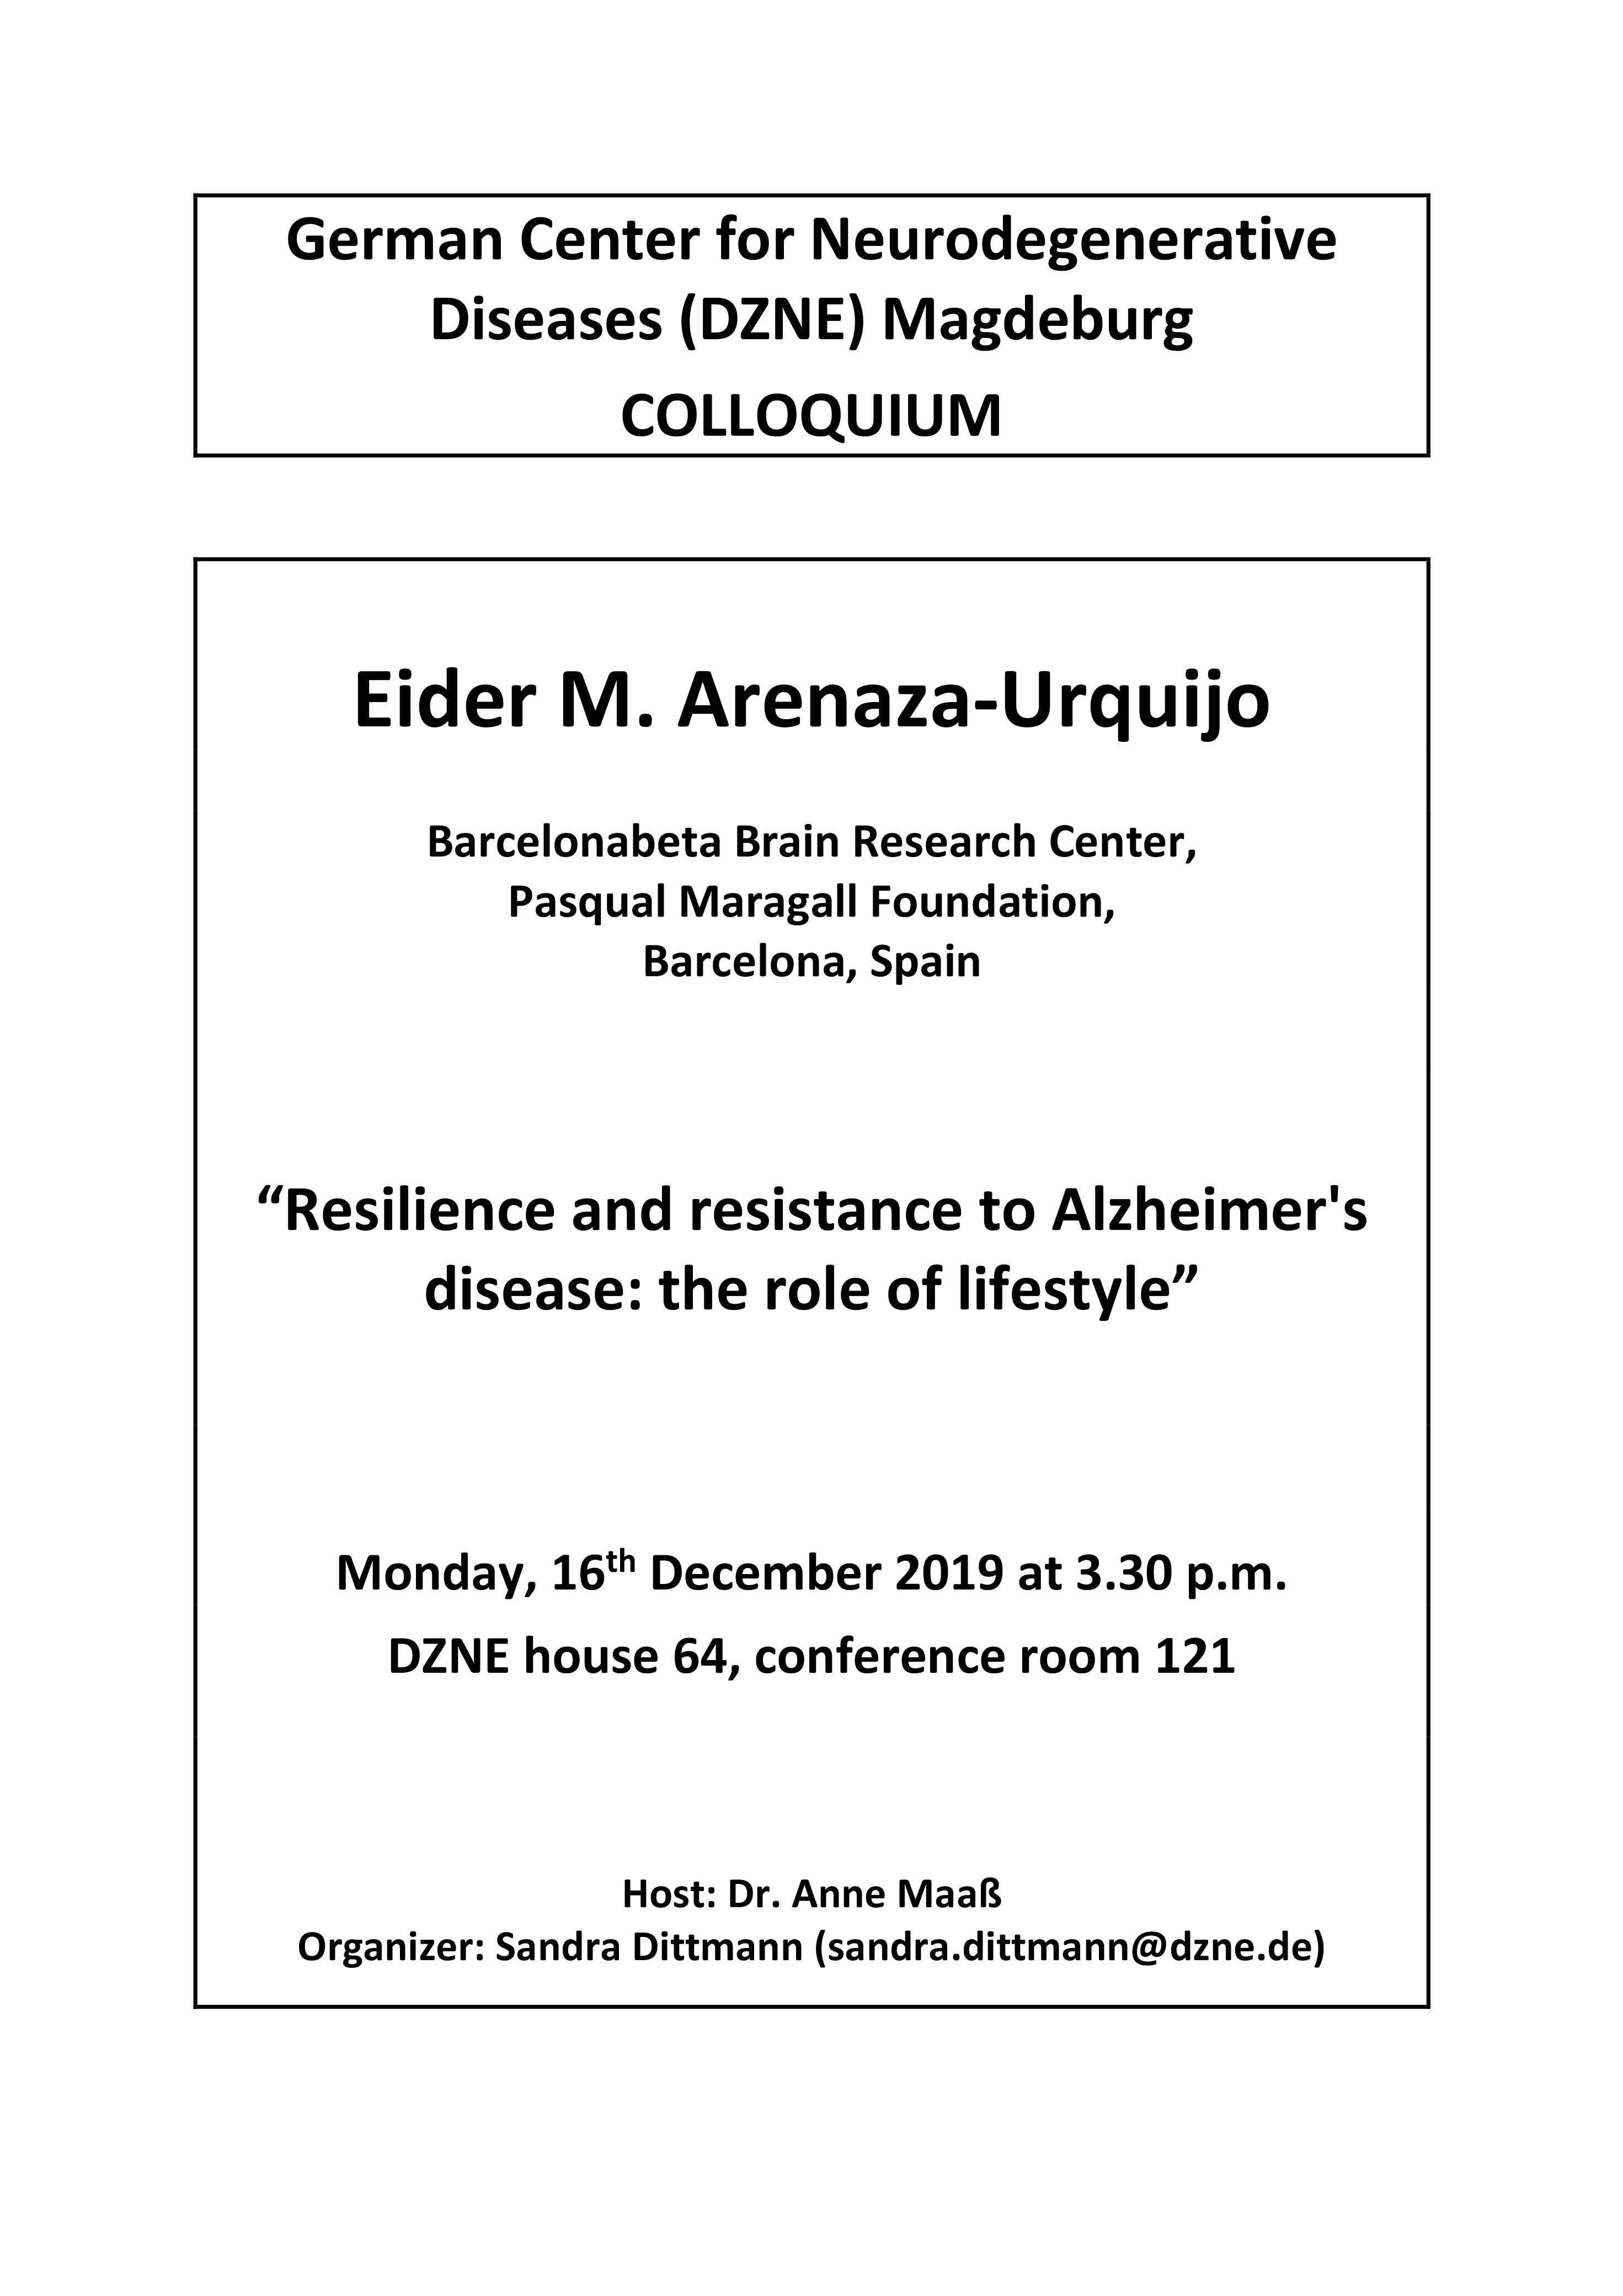 DZNE Colloquium: Resilience and resistance to Alzheimer's disease: the role of lifestyle @ DZNE house 64, conference room 121